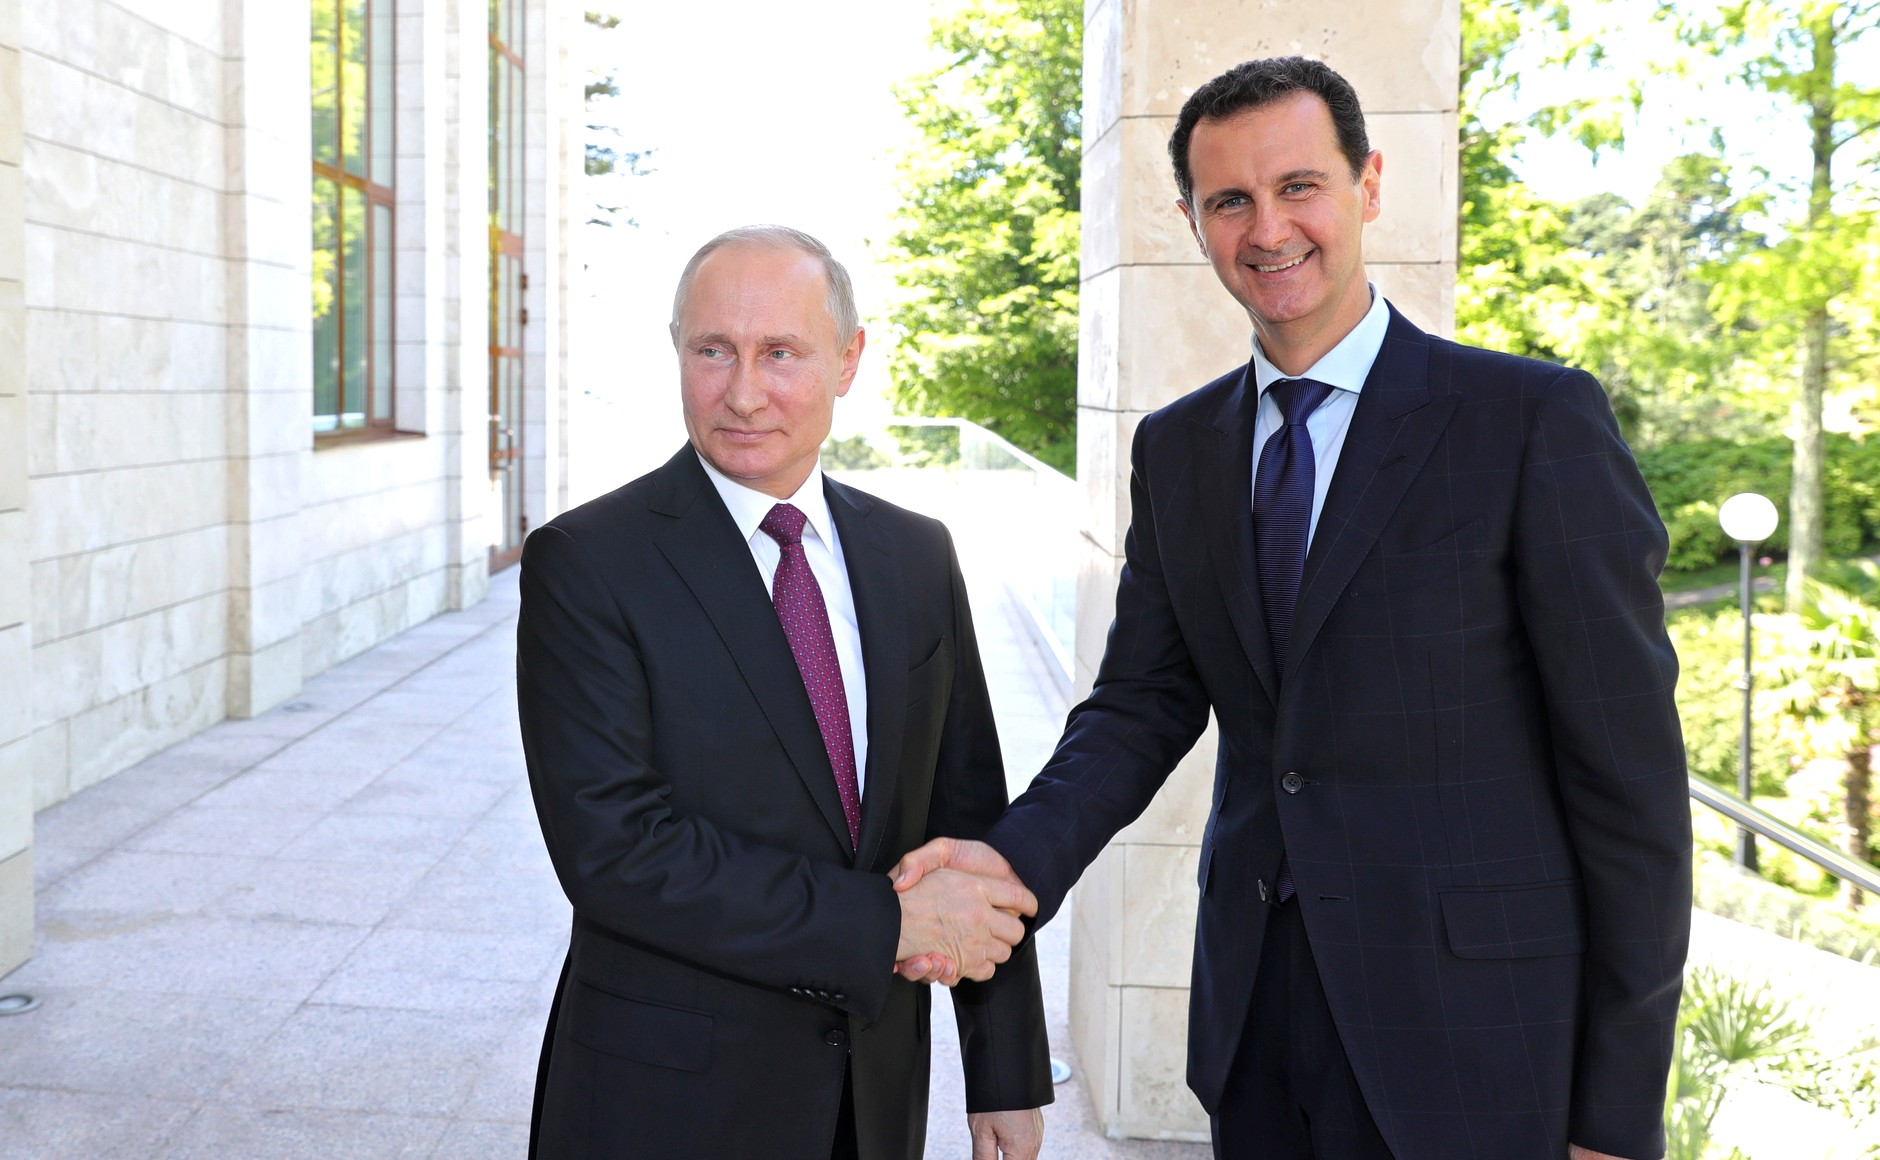 Russian President Vladimir Putin meets President of Syria Bashar Al Assad in Sochi Russia on 17 May 2018